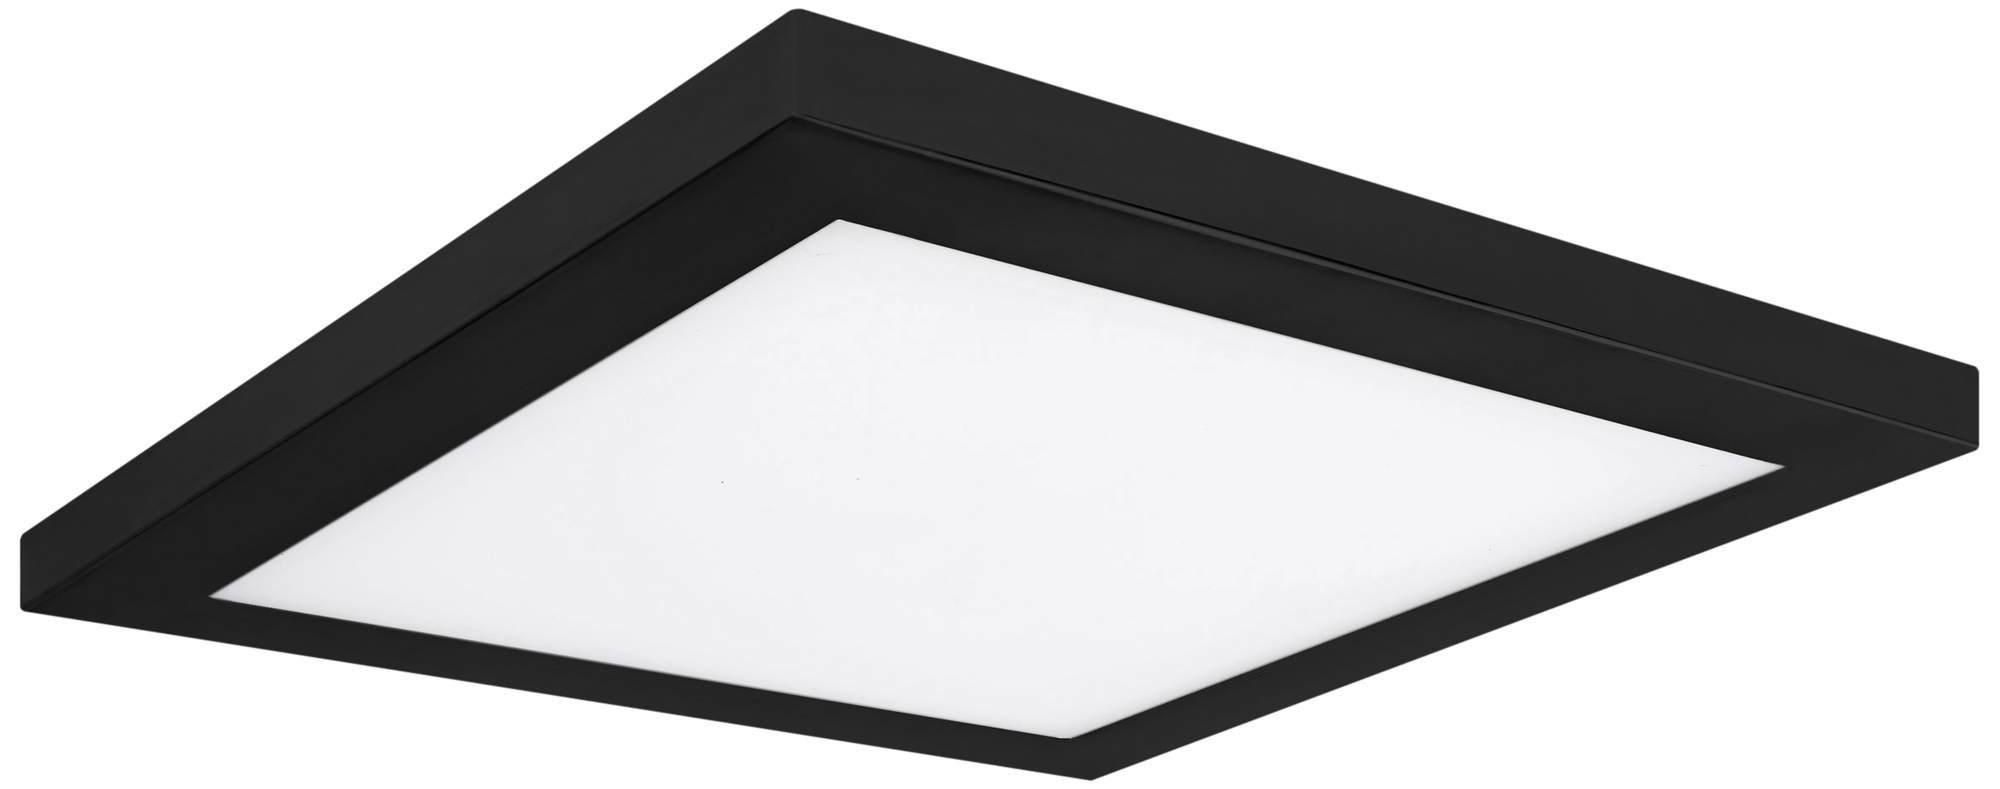 Platter 10 Inch Square Black Led Outdoor Ceiling Light W Remote Outdoor Ceiling Lights Ceiling Lights Contemporary Outdoor Lighting